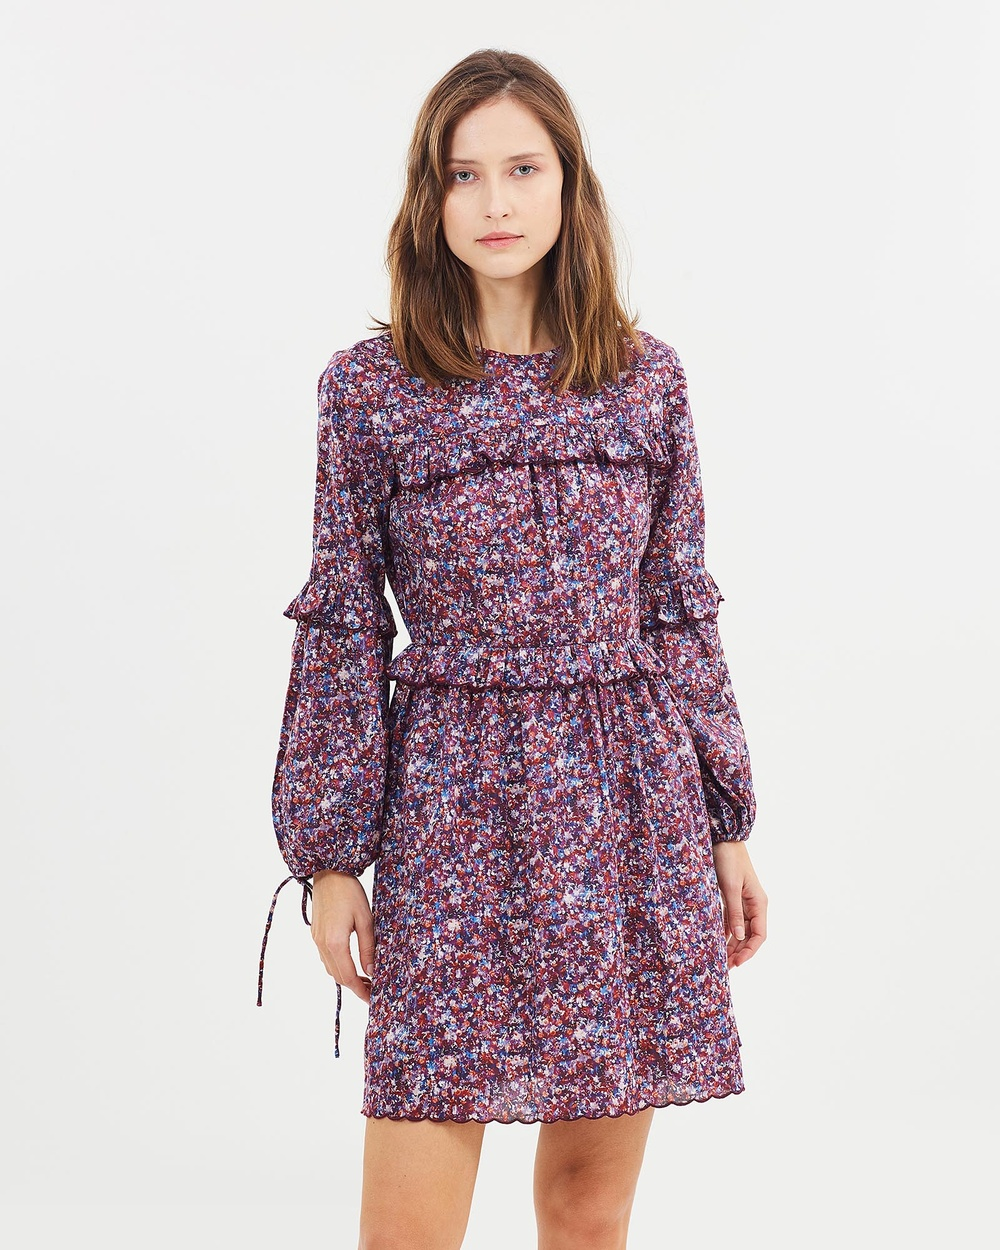 Morrison Adelaide Mini Dress Dresses Purple Adelaide Mini Dress